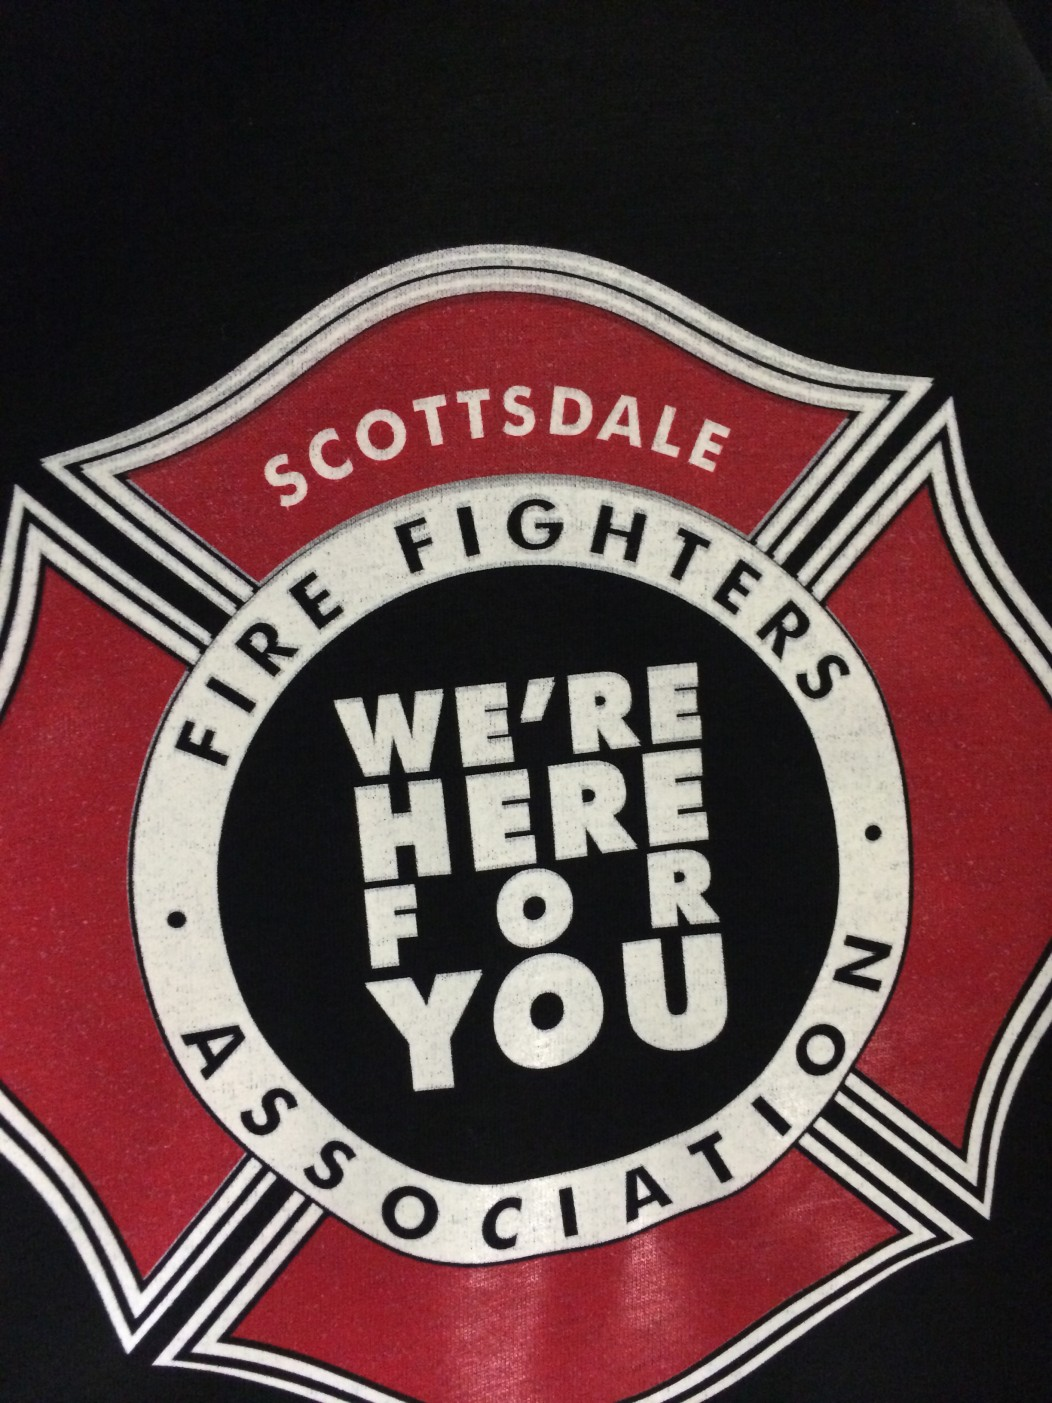 Scottsdale Firefighters Association Direct To Garment Full Color T